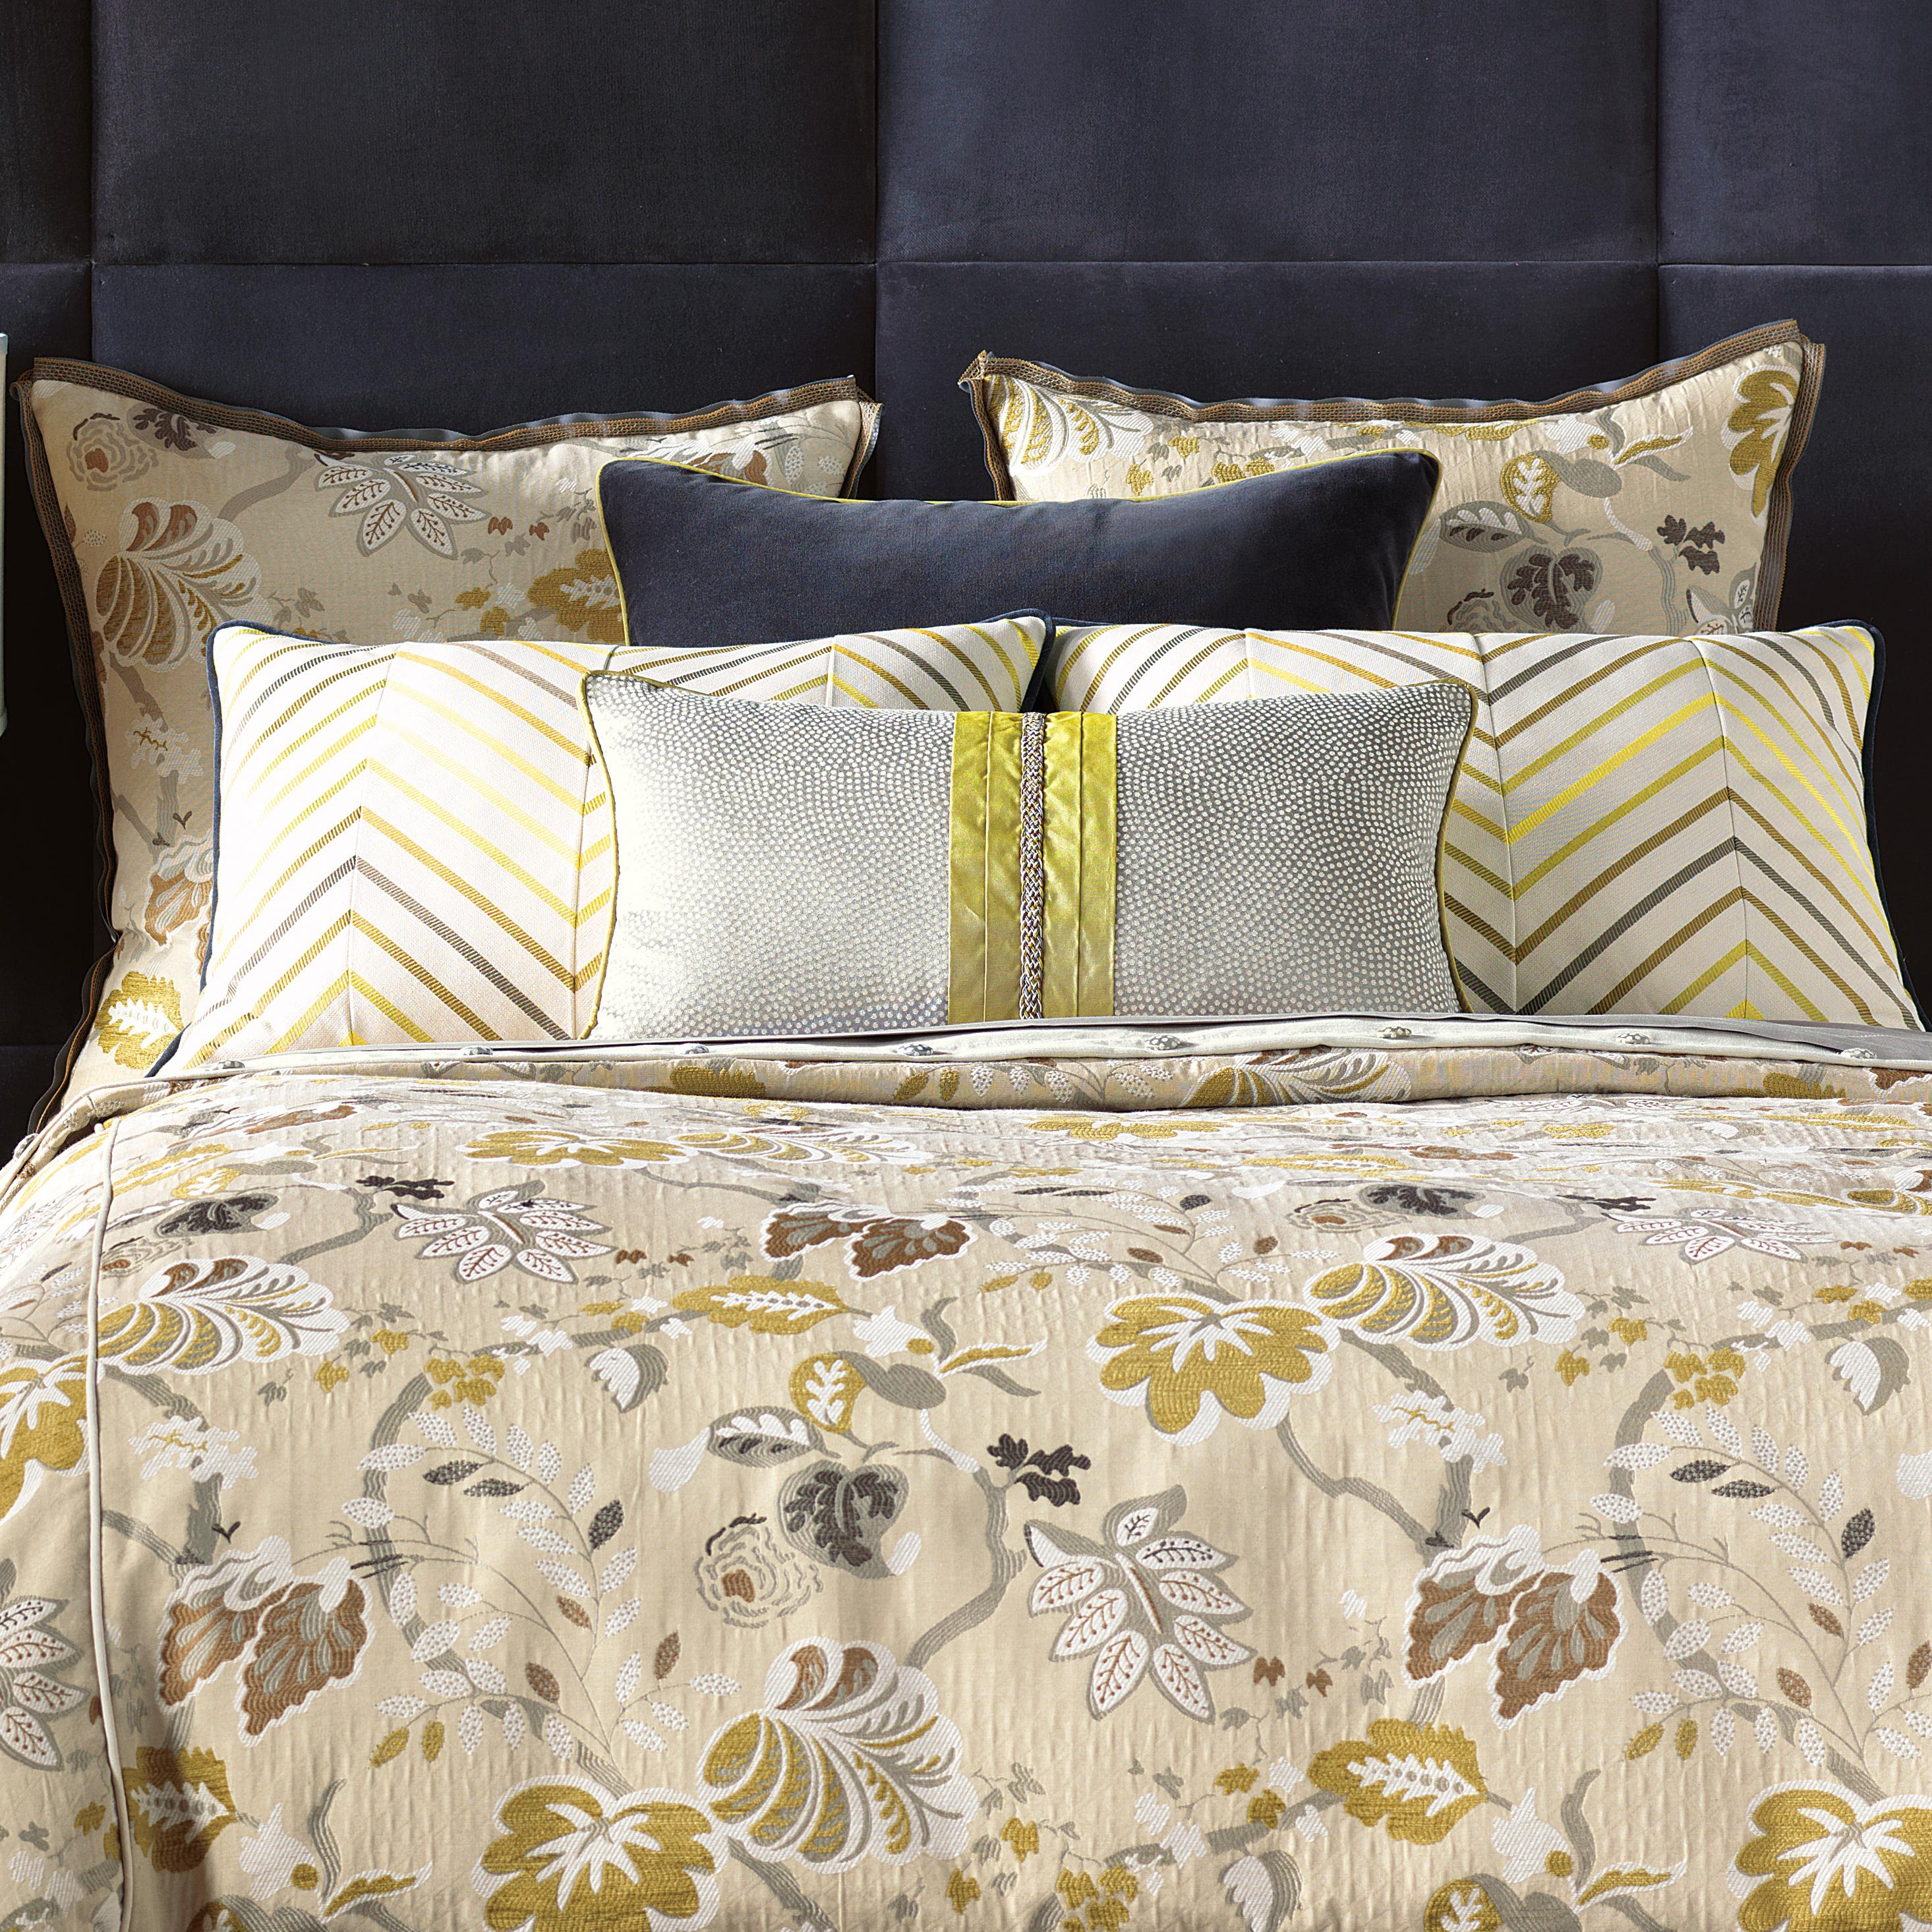 Caldwell King Sham by Eastern Accents at Alison Craig Home Furnishings